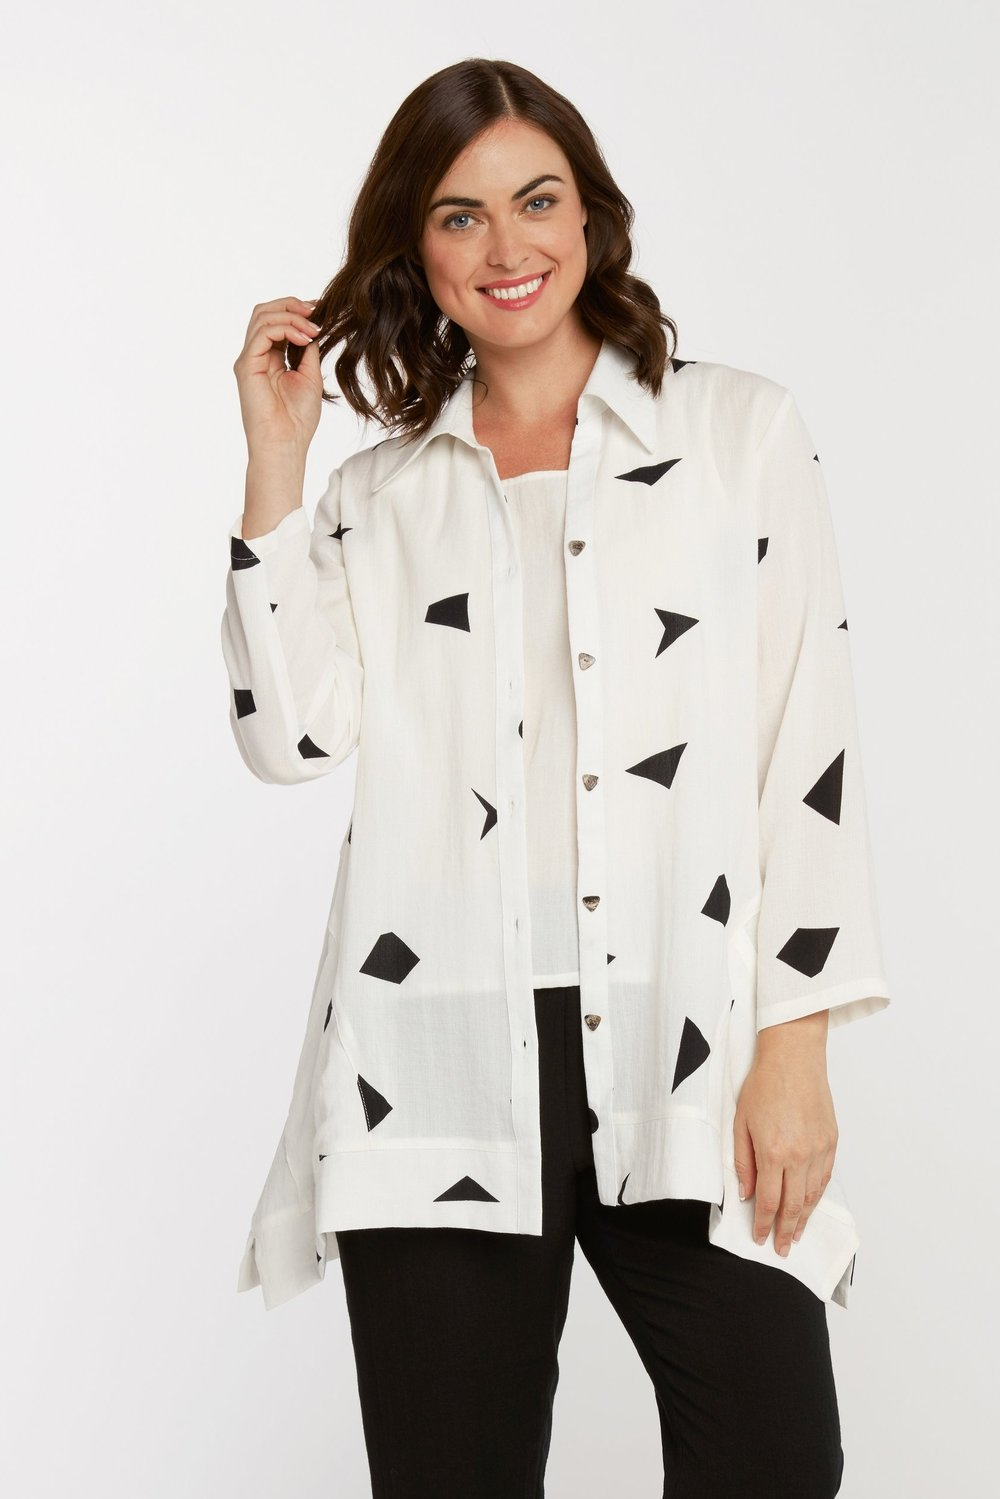 AA222 - Triangle Tunic    CL9239 - Shapes on White